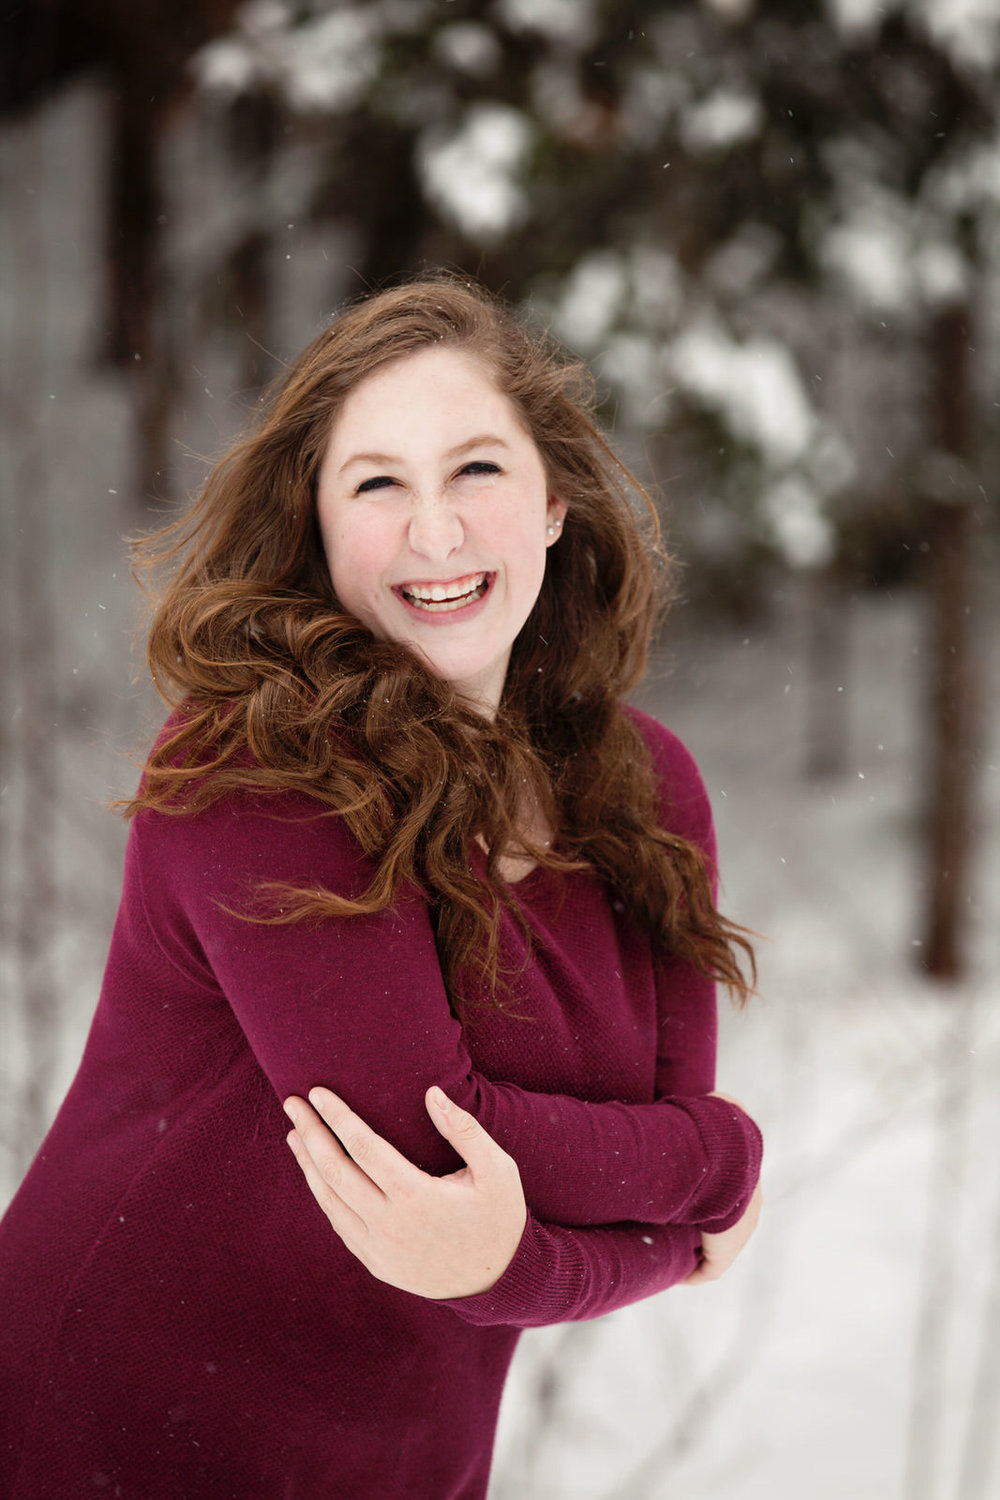 upper-peninsula-photographer-high-school-senior-marquette-ishpeming-negaunee-michigan-jackie-solomon-044.jpg